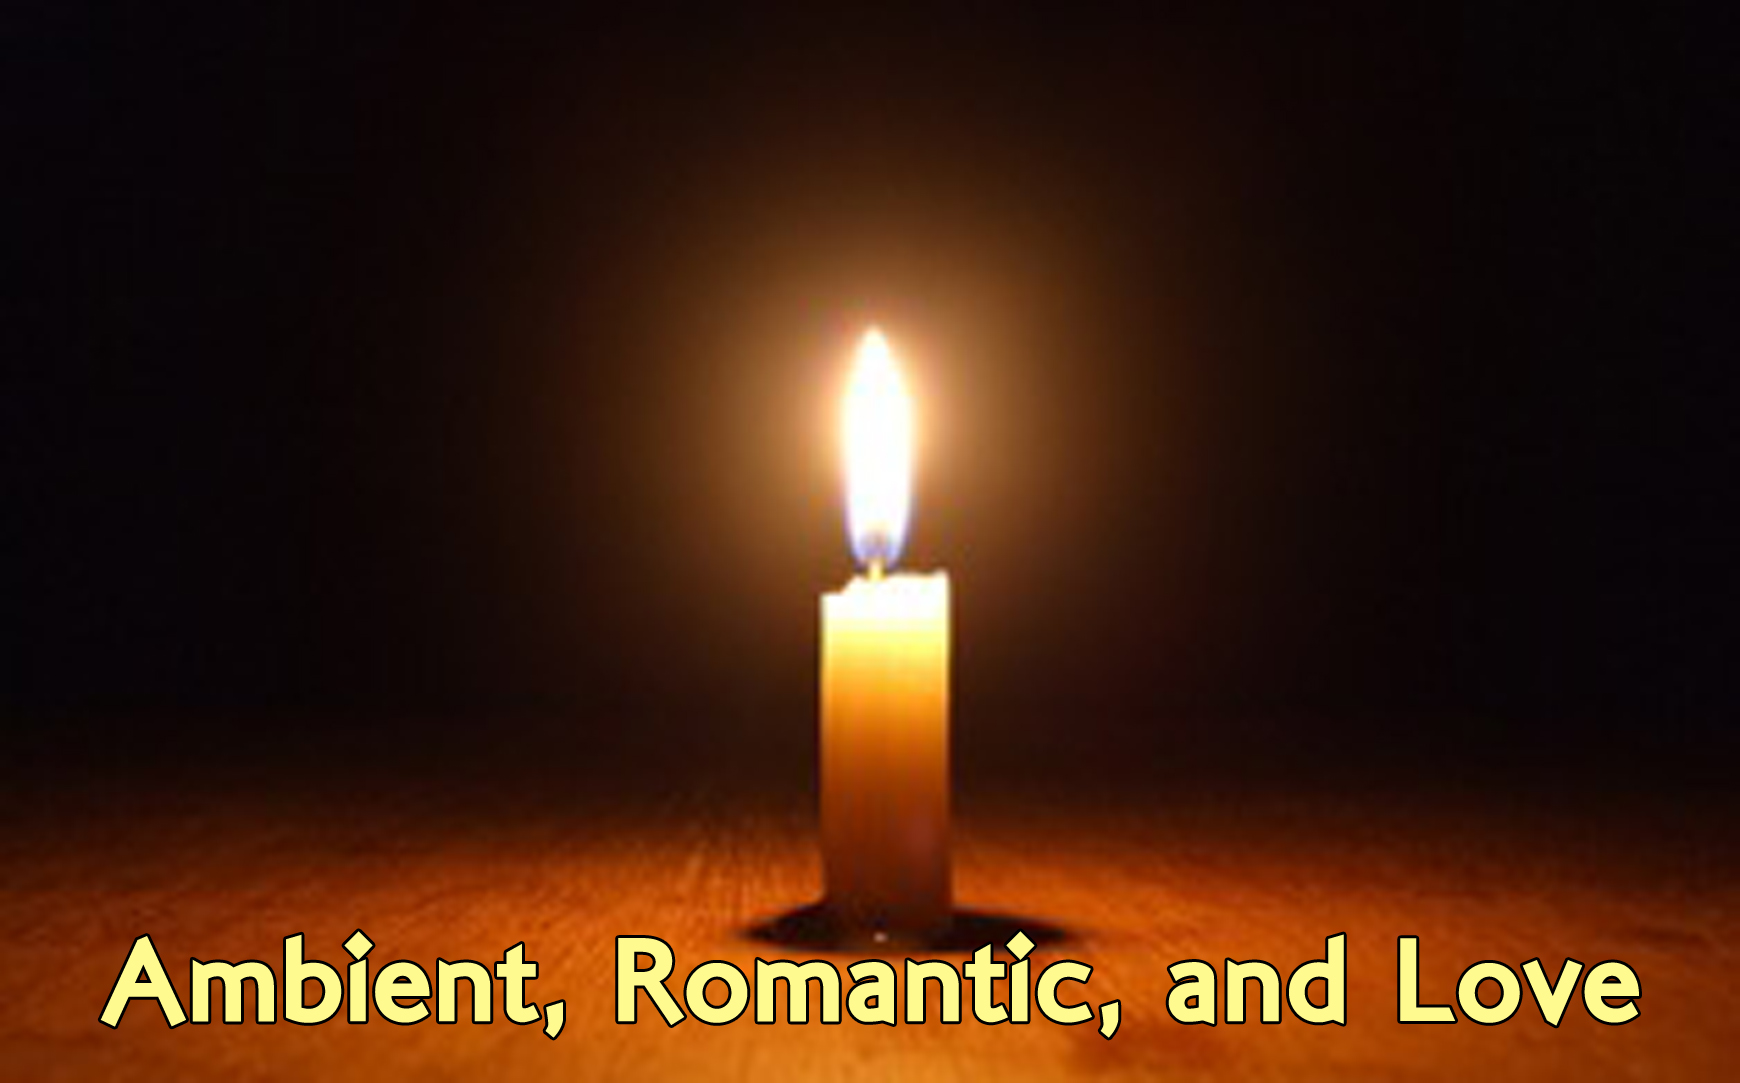 Ambient, Romantic, and Love